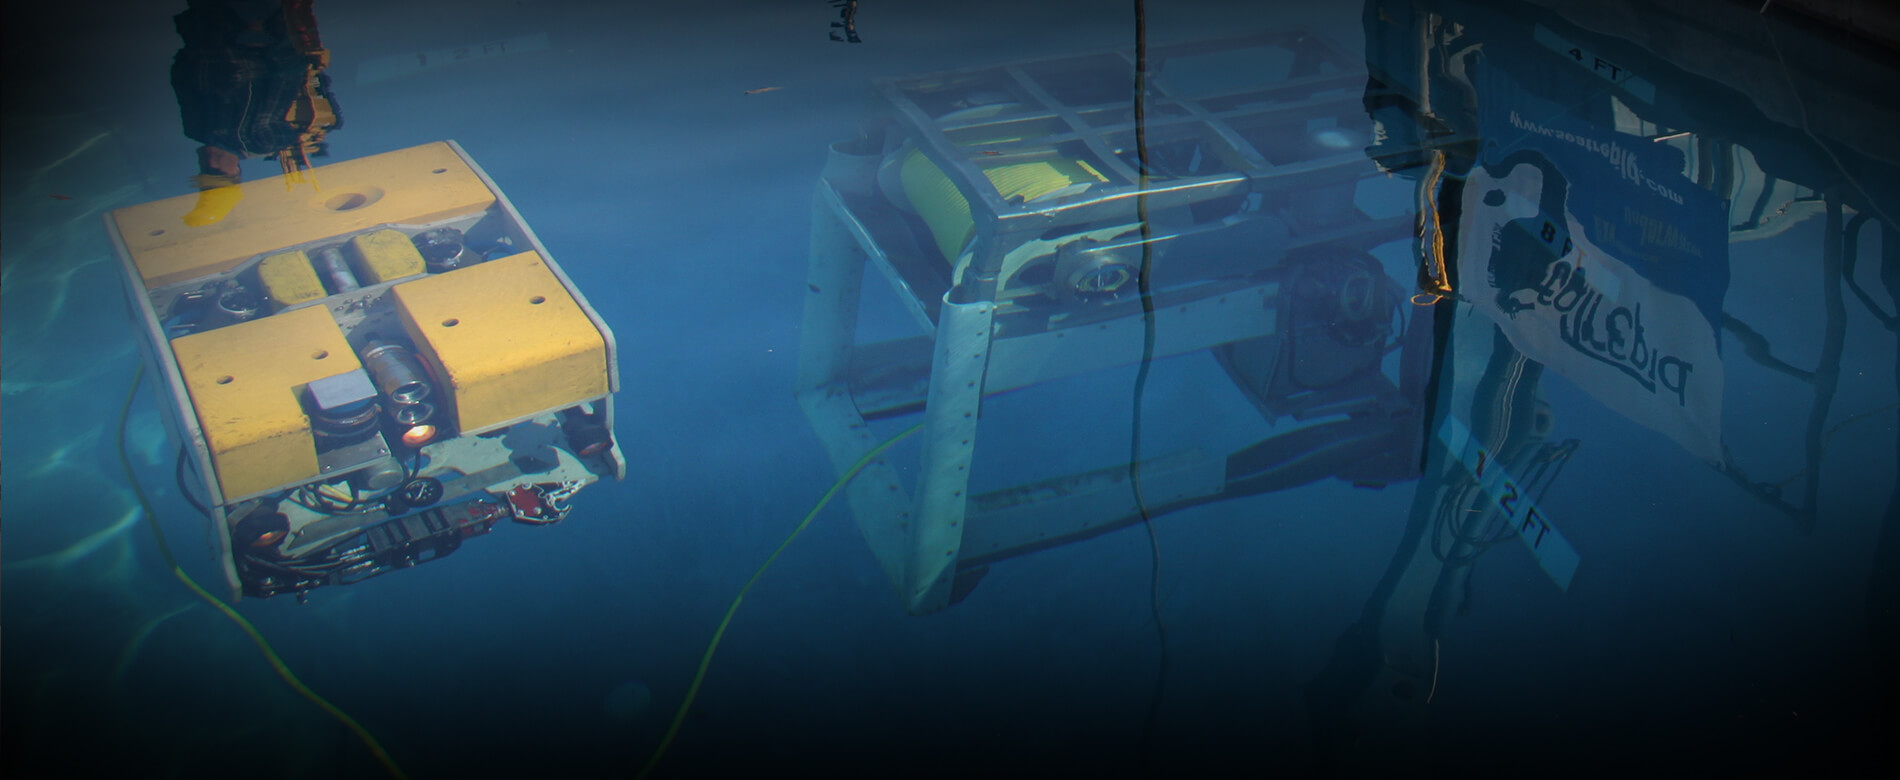 ROV in Test Pool at SeaTrepid facility